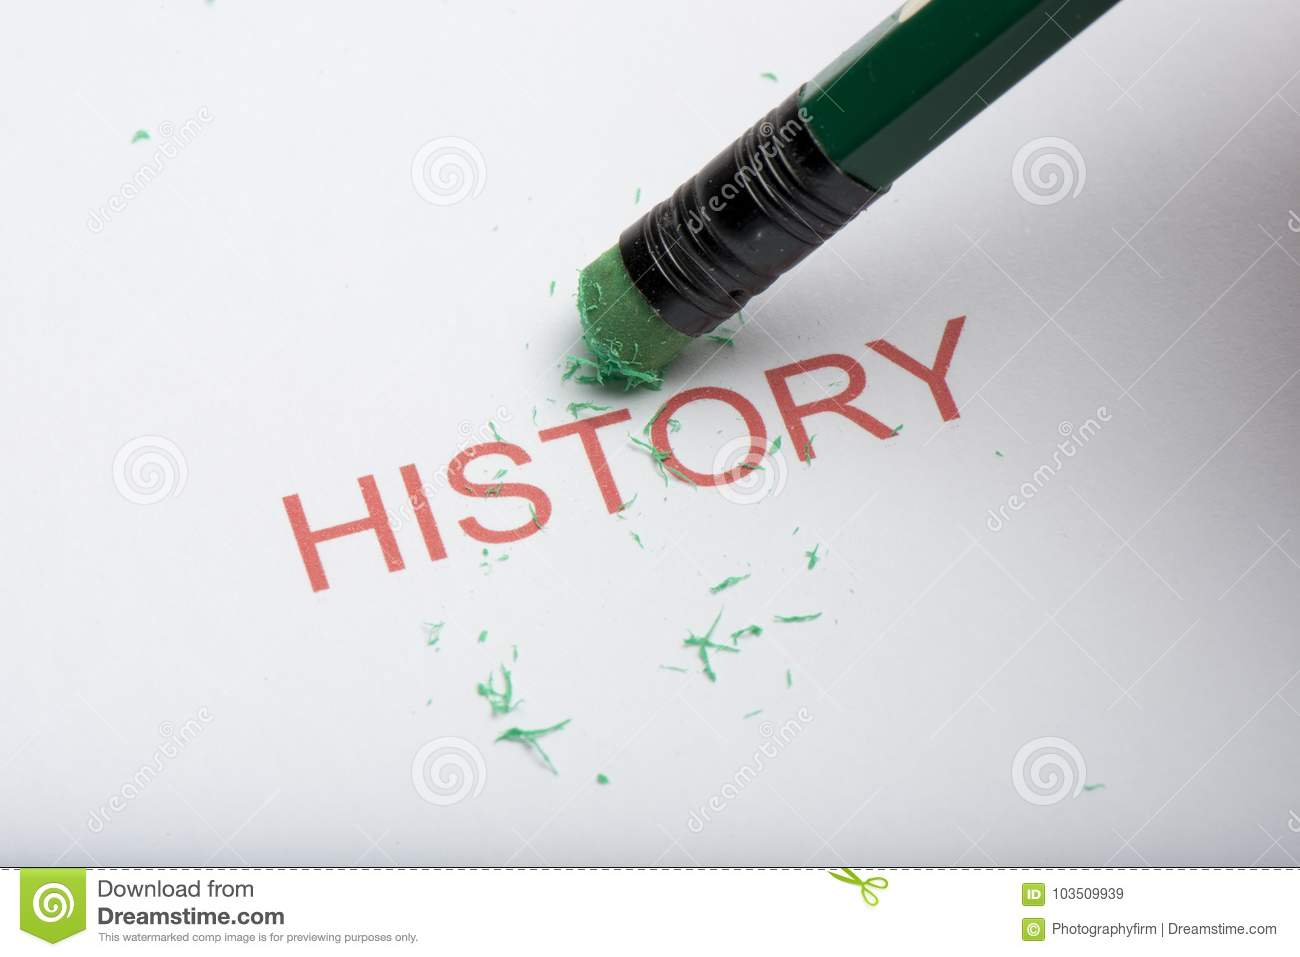 Pencil Erasing the Word `History` on Paper